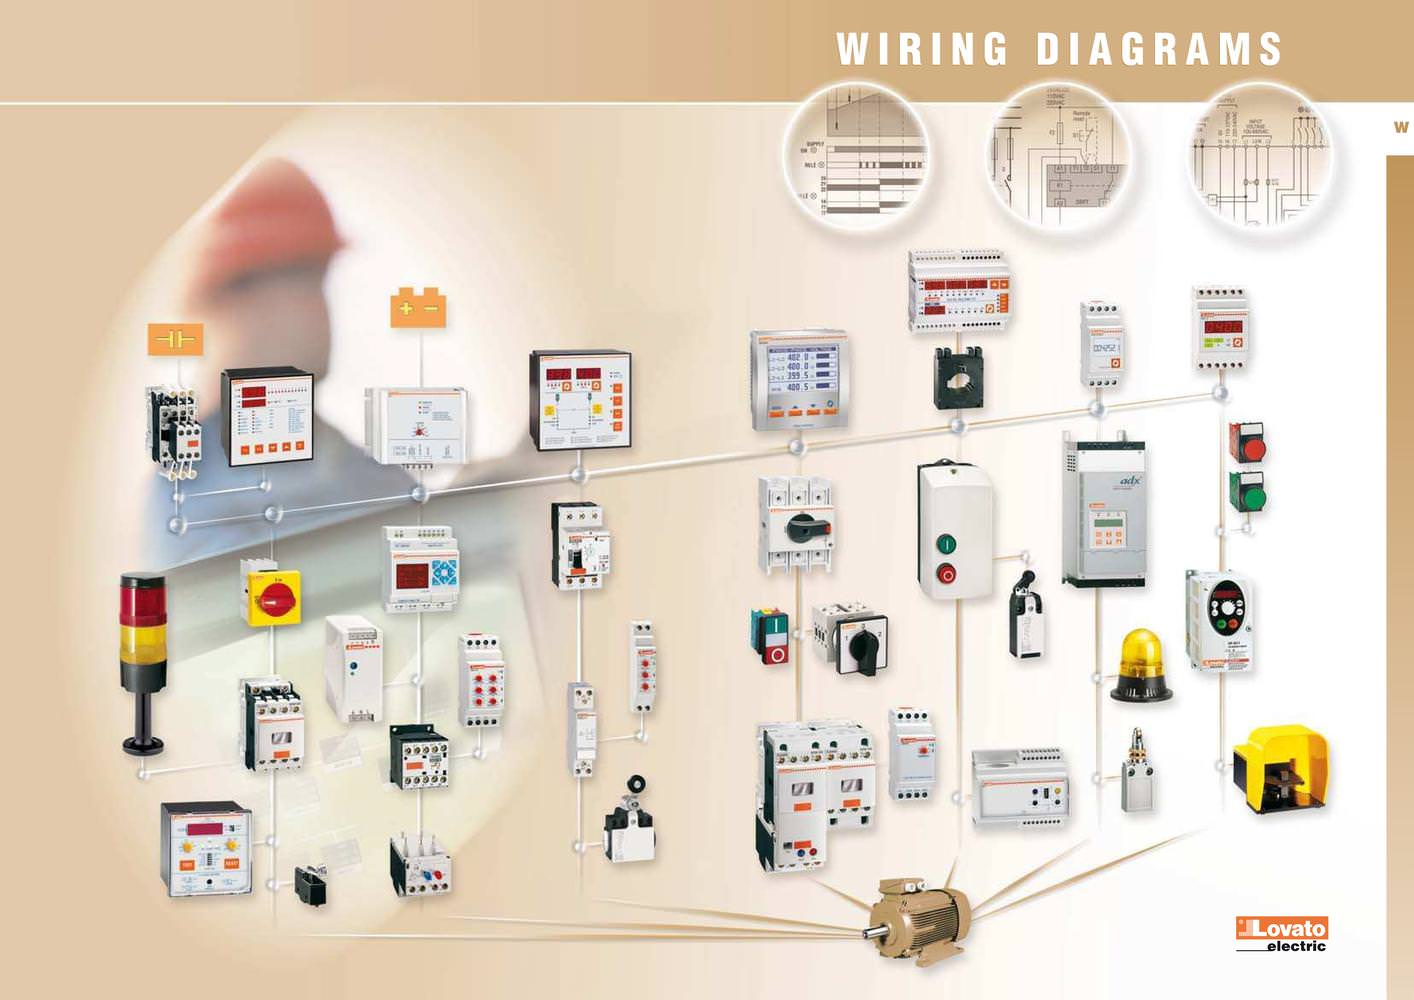 Wiring Diagrams Lovato Electric Pdf Catalogue Technical Control Diagram Ats 1 39 Pages